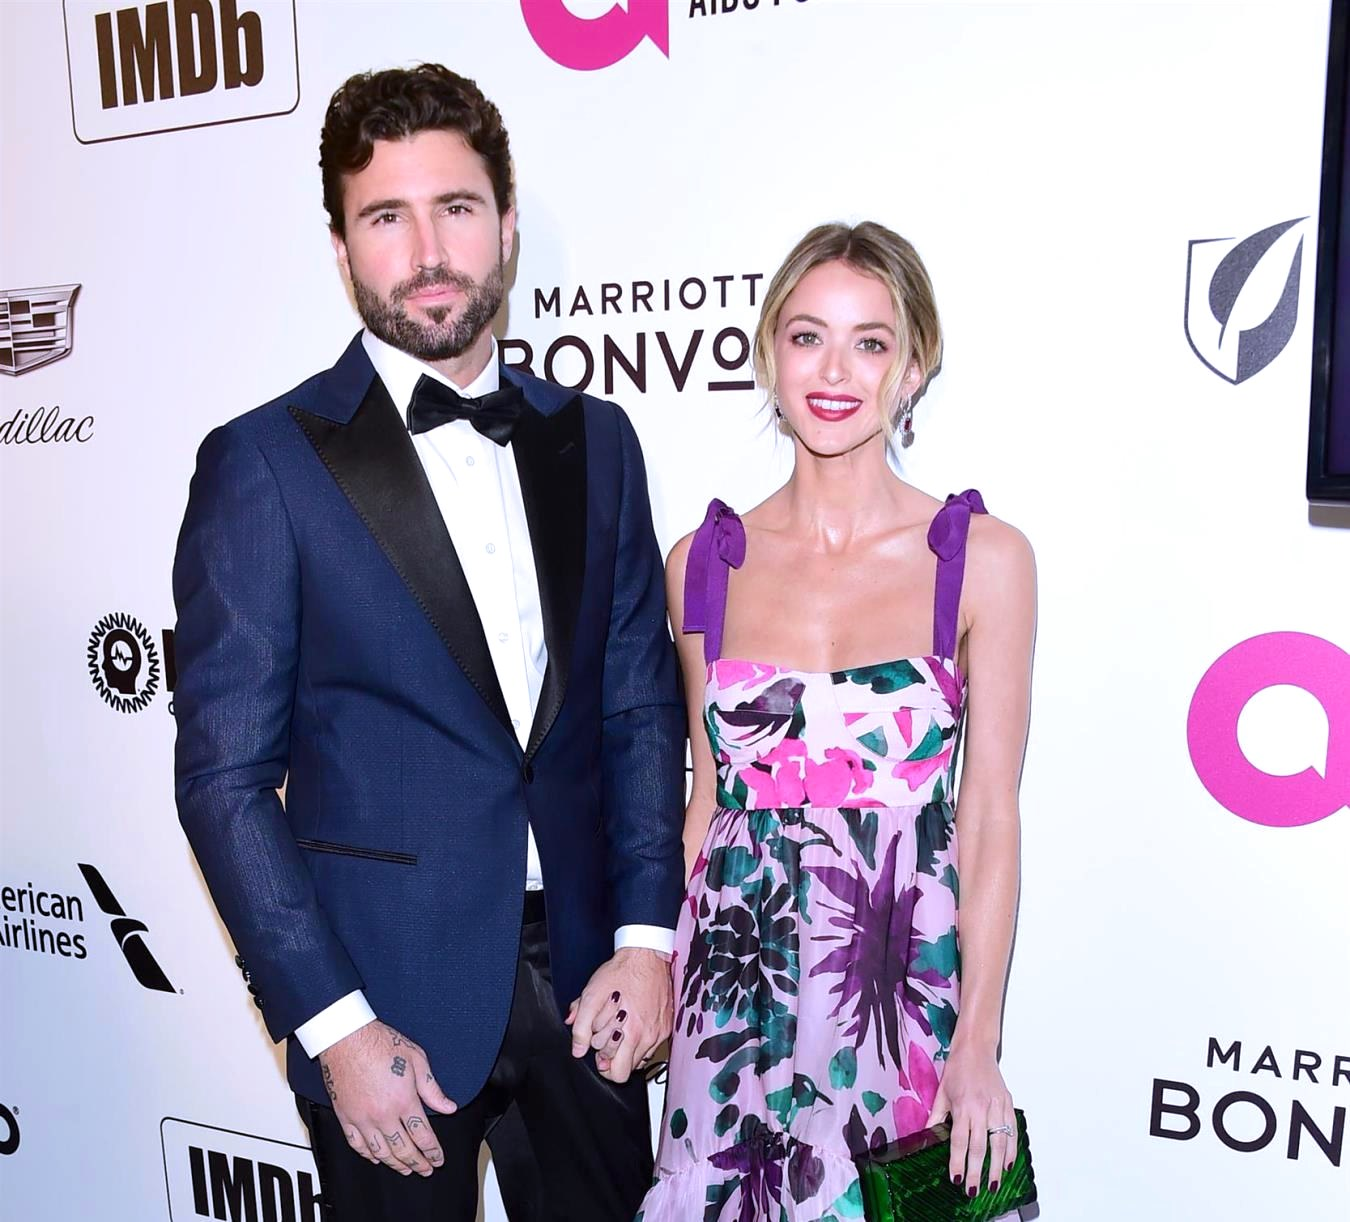 The Hills' Brody Jenner Lives it Up in Vegas After Split From Kaitlynn Carter, Couple Was Never Legally Married